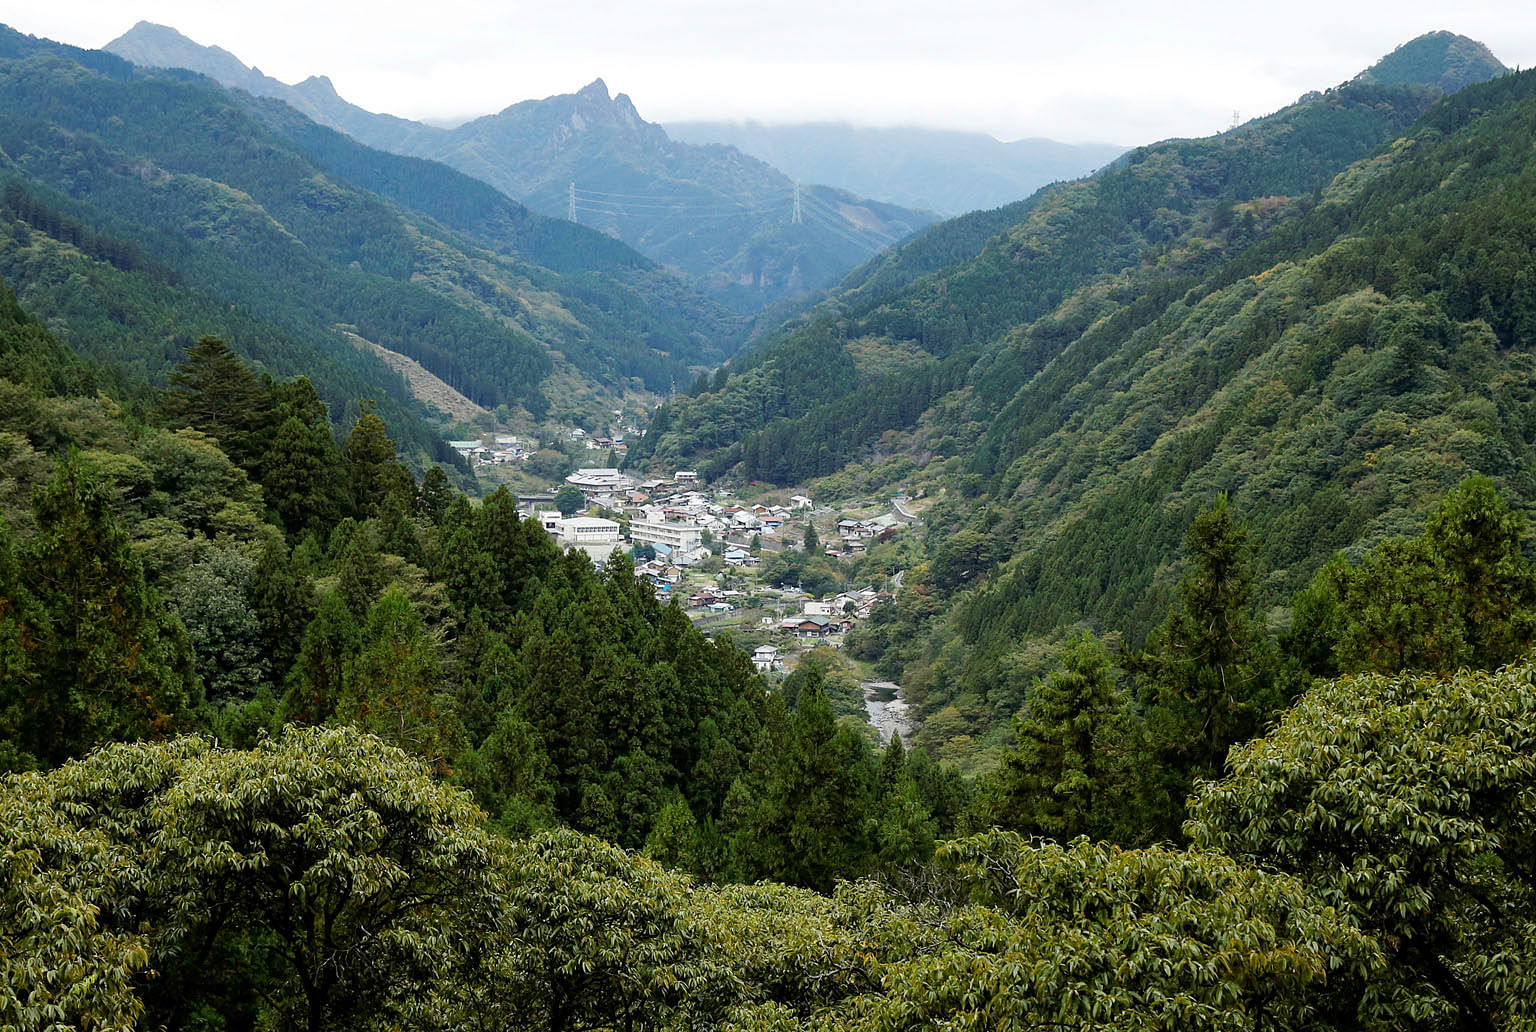 The hamlet of Nanmoku Village nestled between mountains in Gunma prefecture. In Japan, land that was once a feudal treasure is now so worthless that its owners are running away.